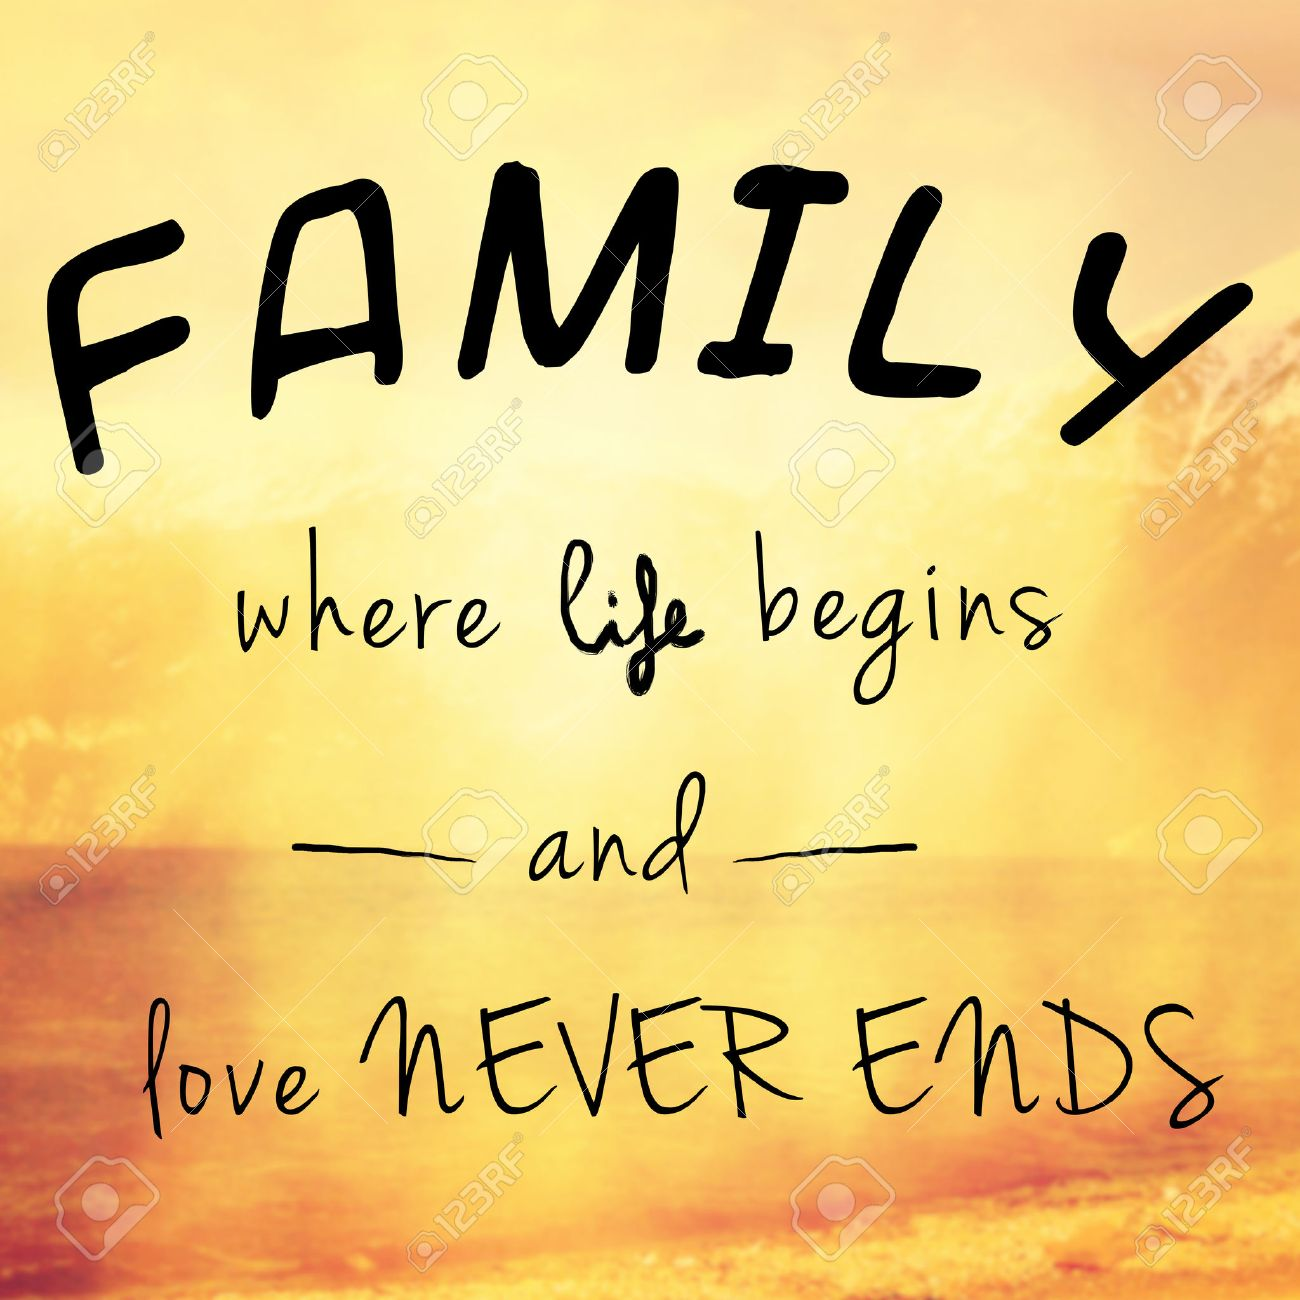 love quotes Beautiful and inspiring message or quote about family life and love Stock